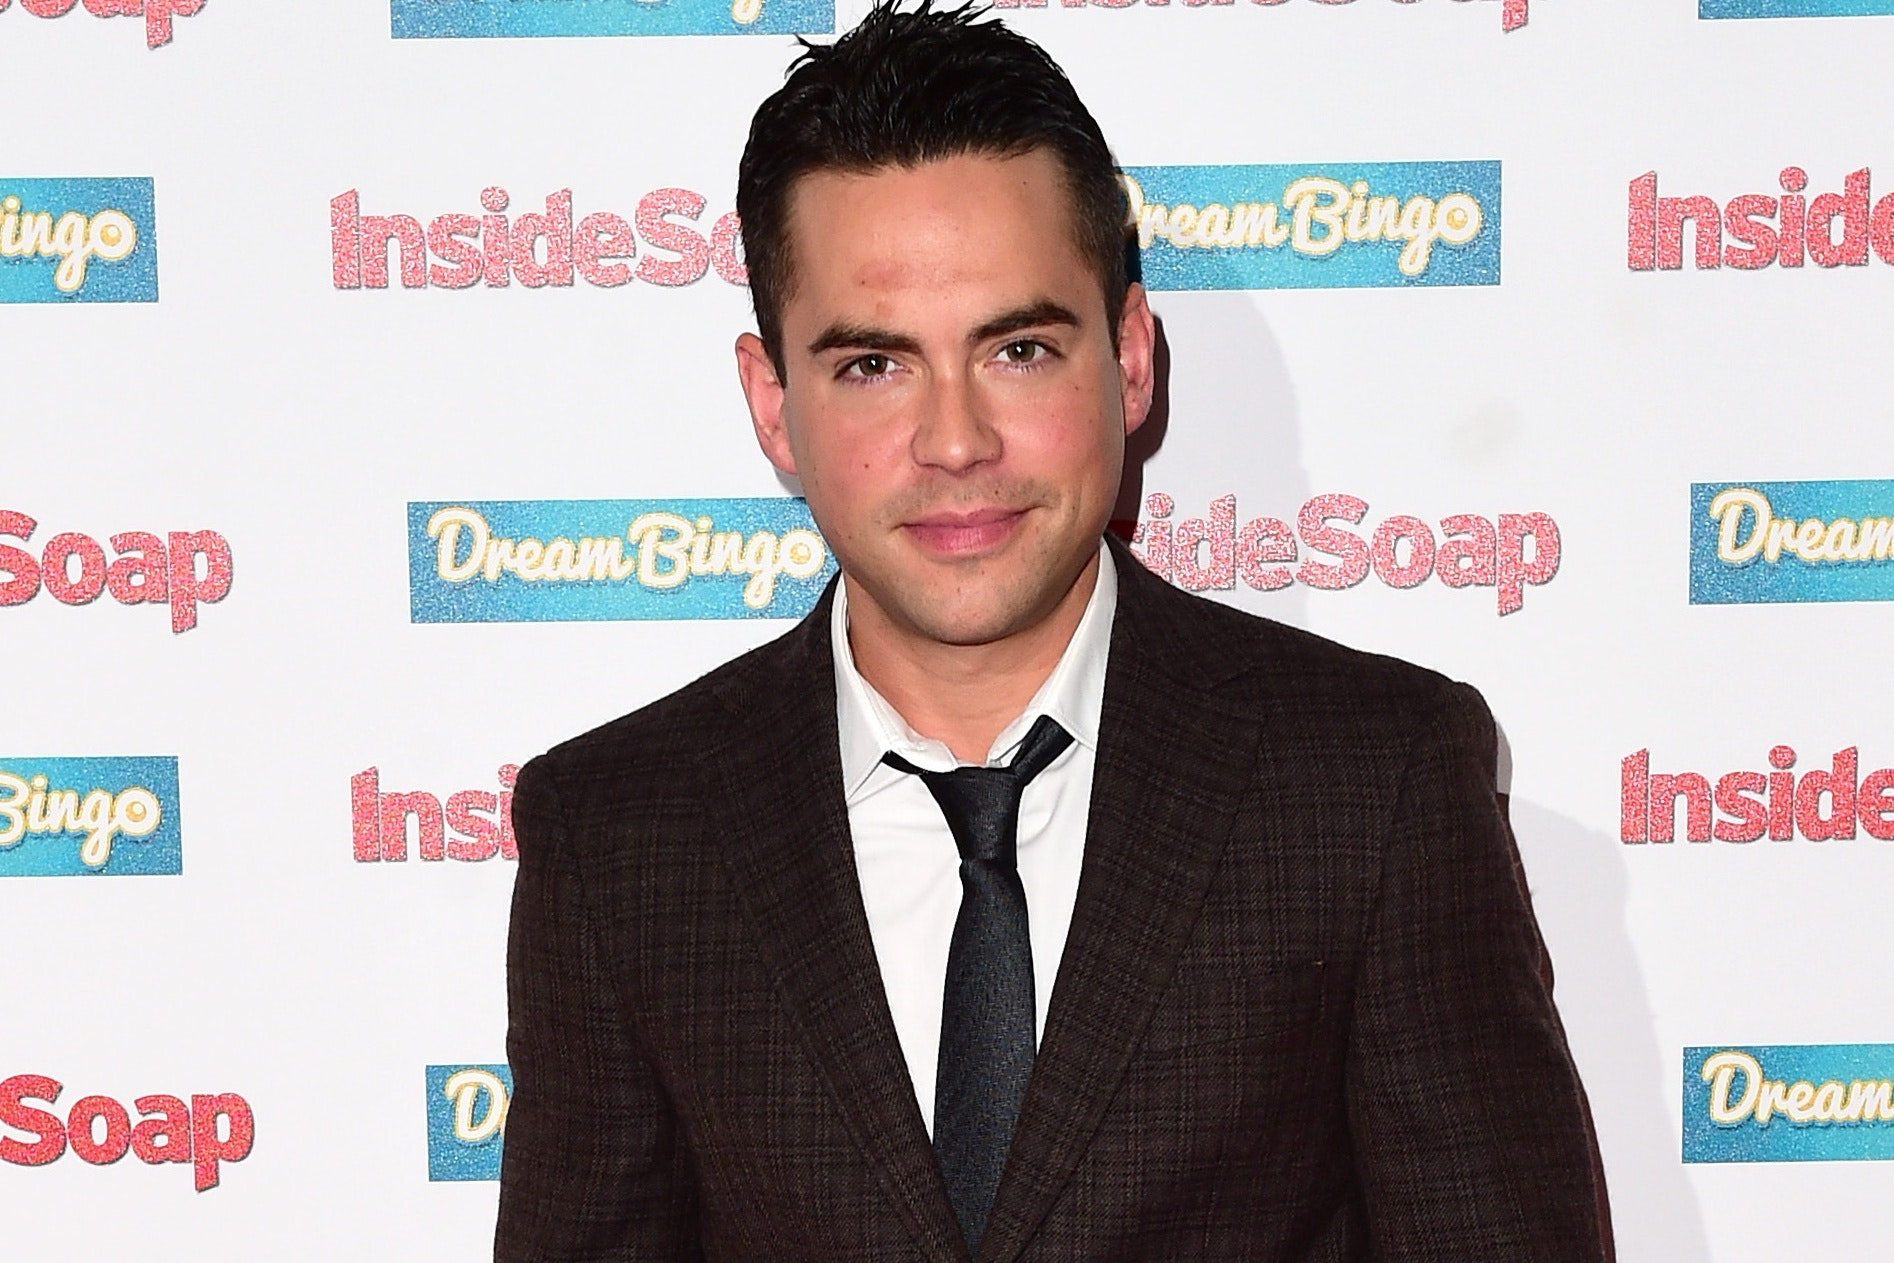 Taunton-born ex-Coronation Street star Bruno Langley admits sexual assaults on two women